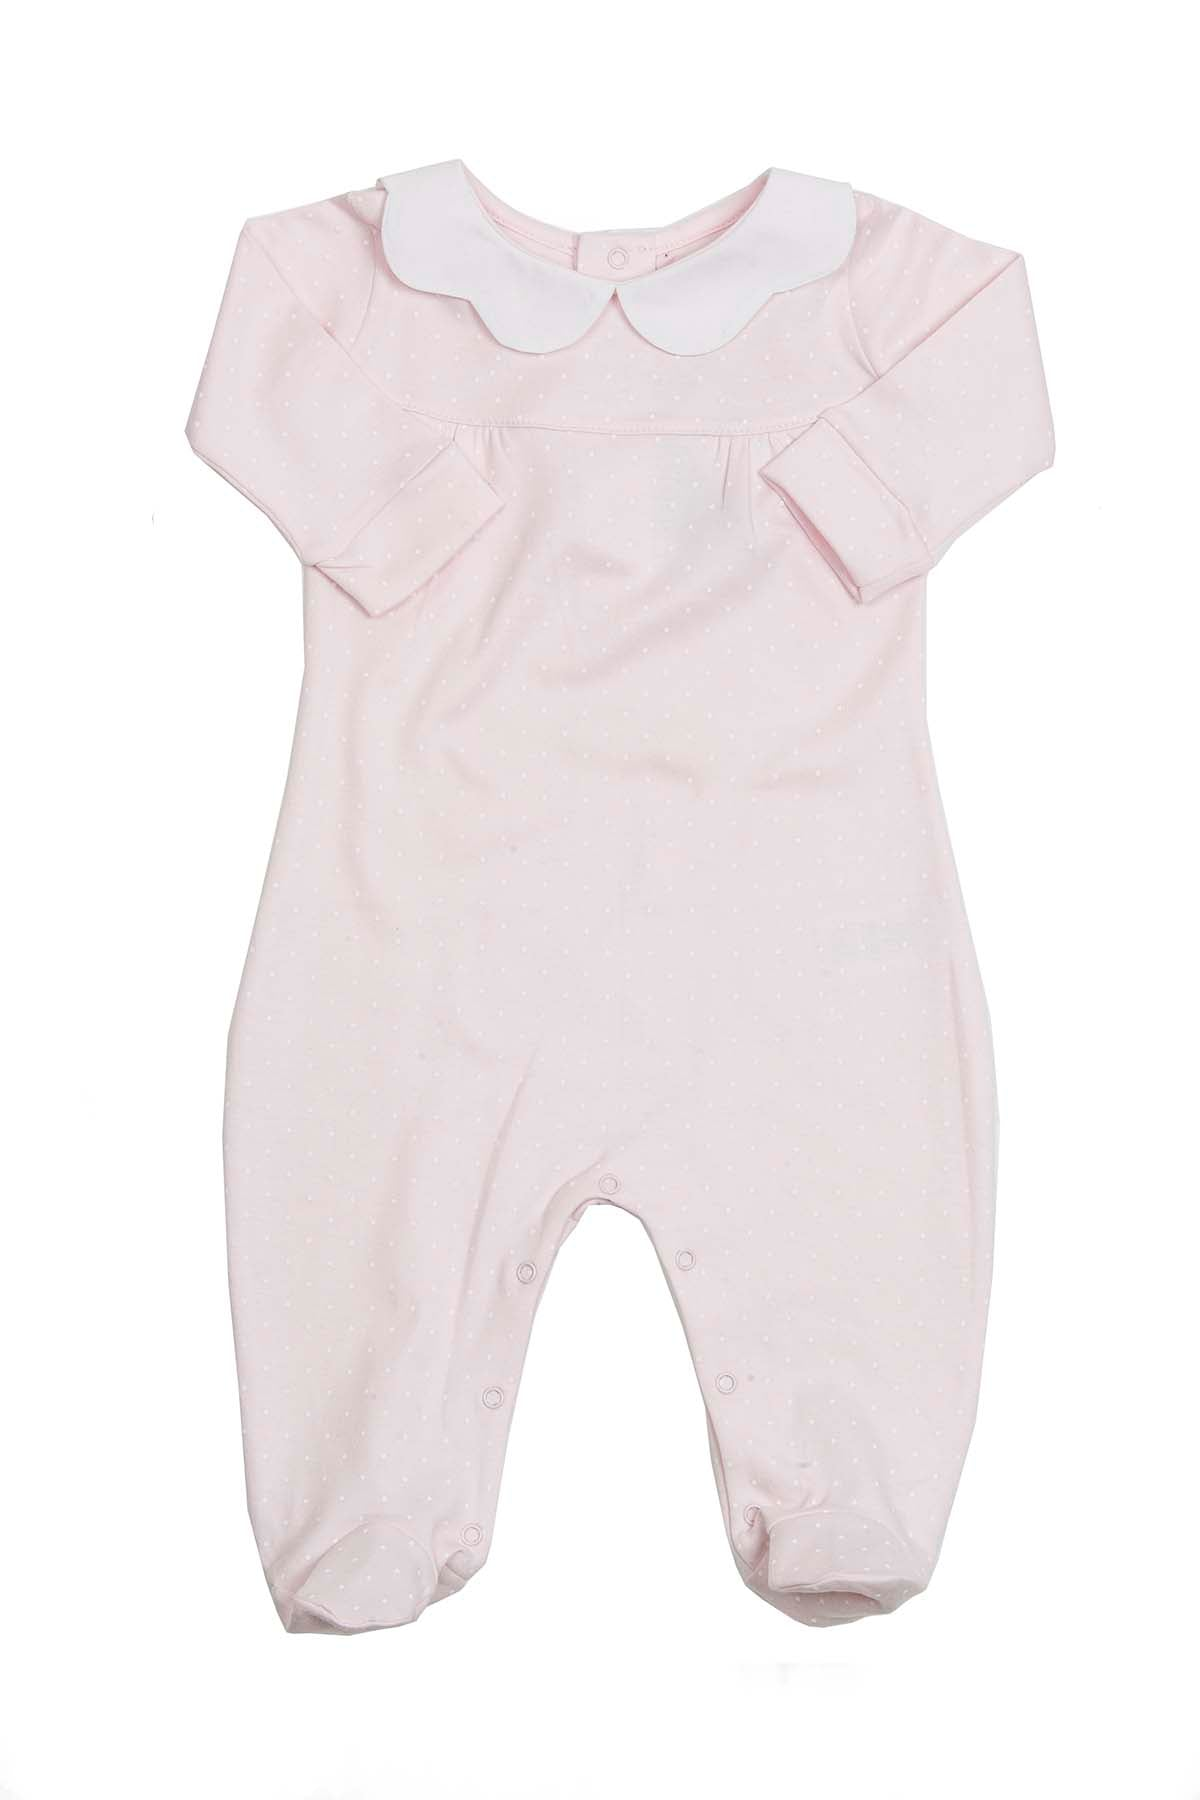 Cotton Pink Pijama with white dots and scallop neck Pima Cotton